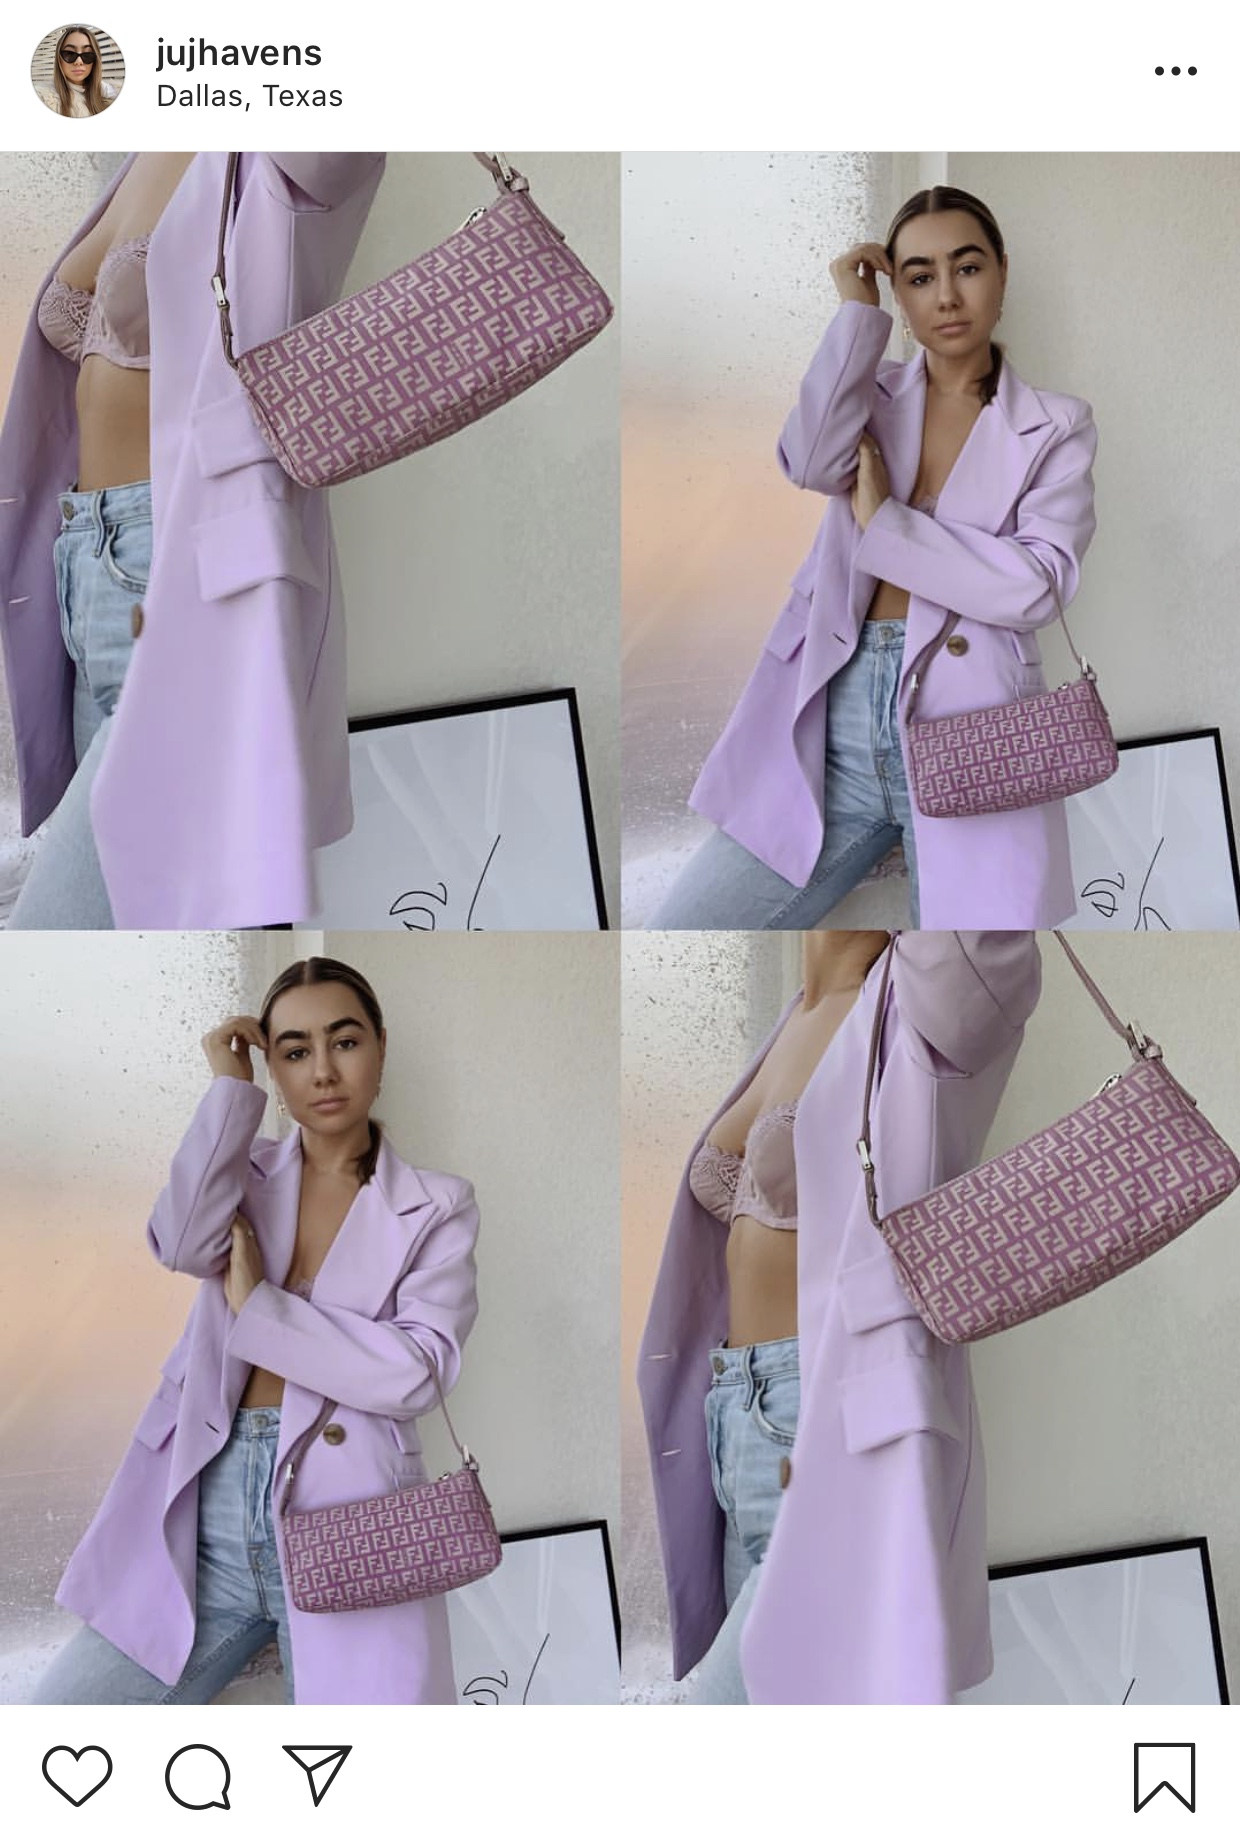 A woman in a purple jacket holding a purple purse.